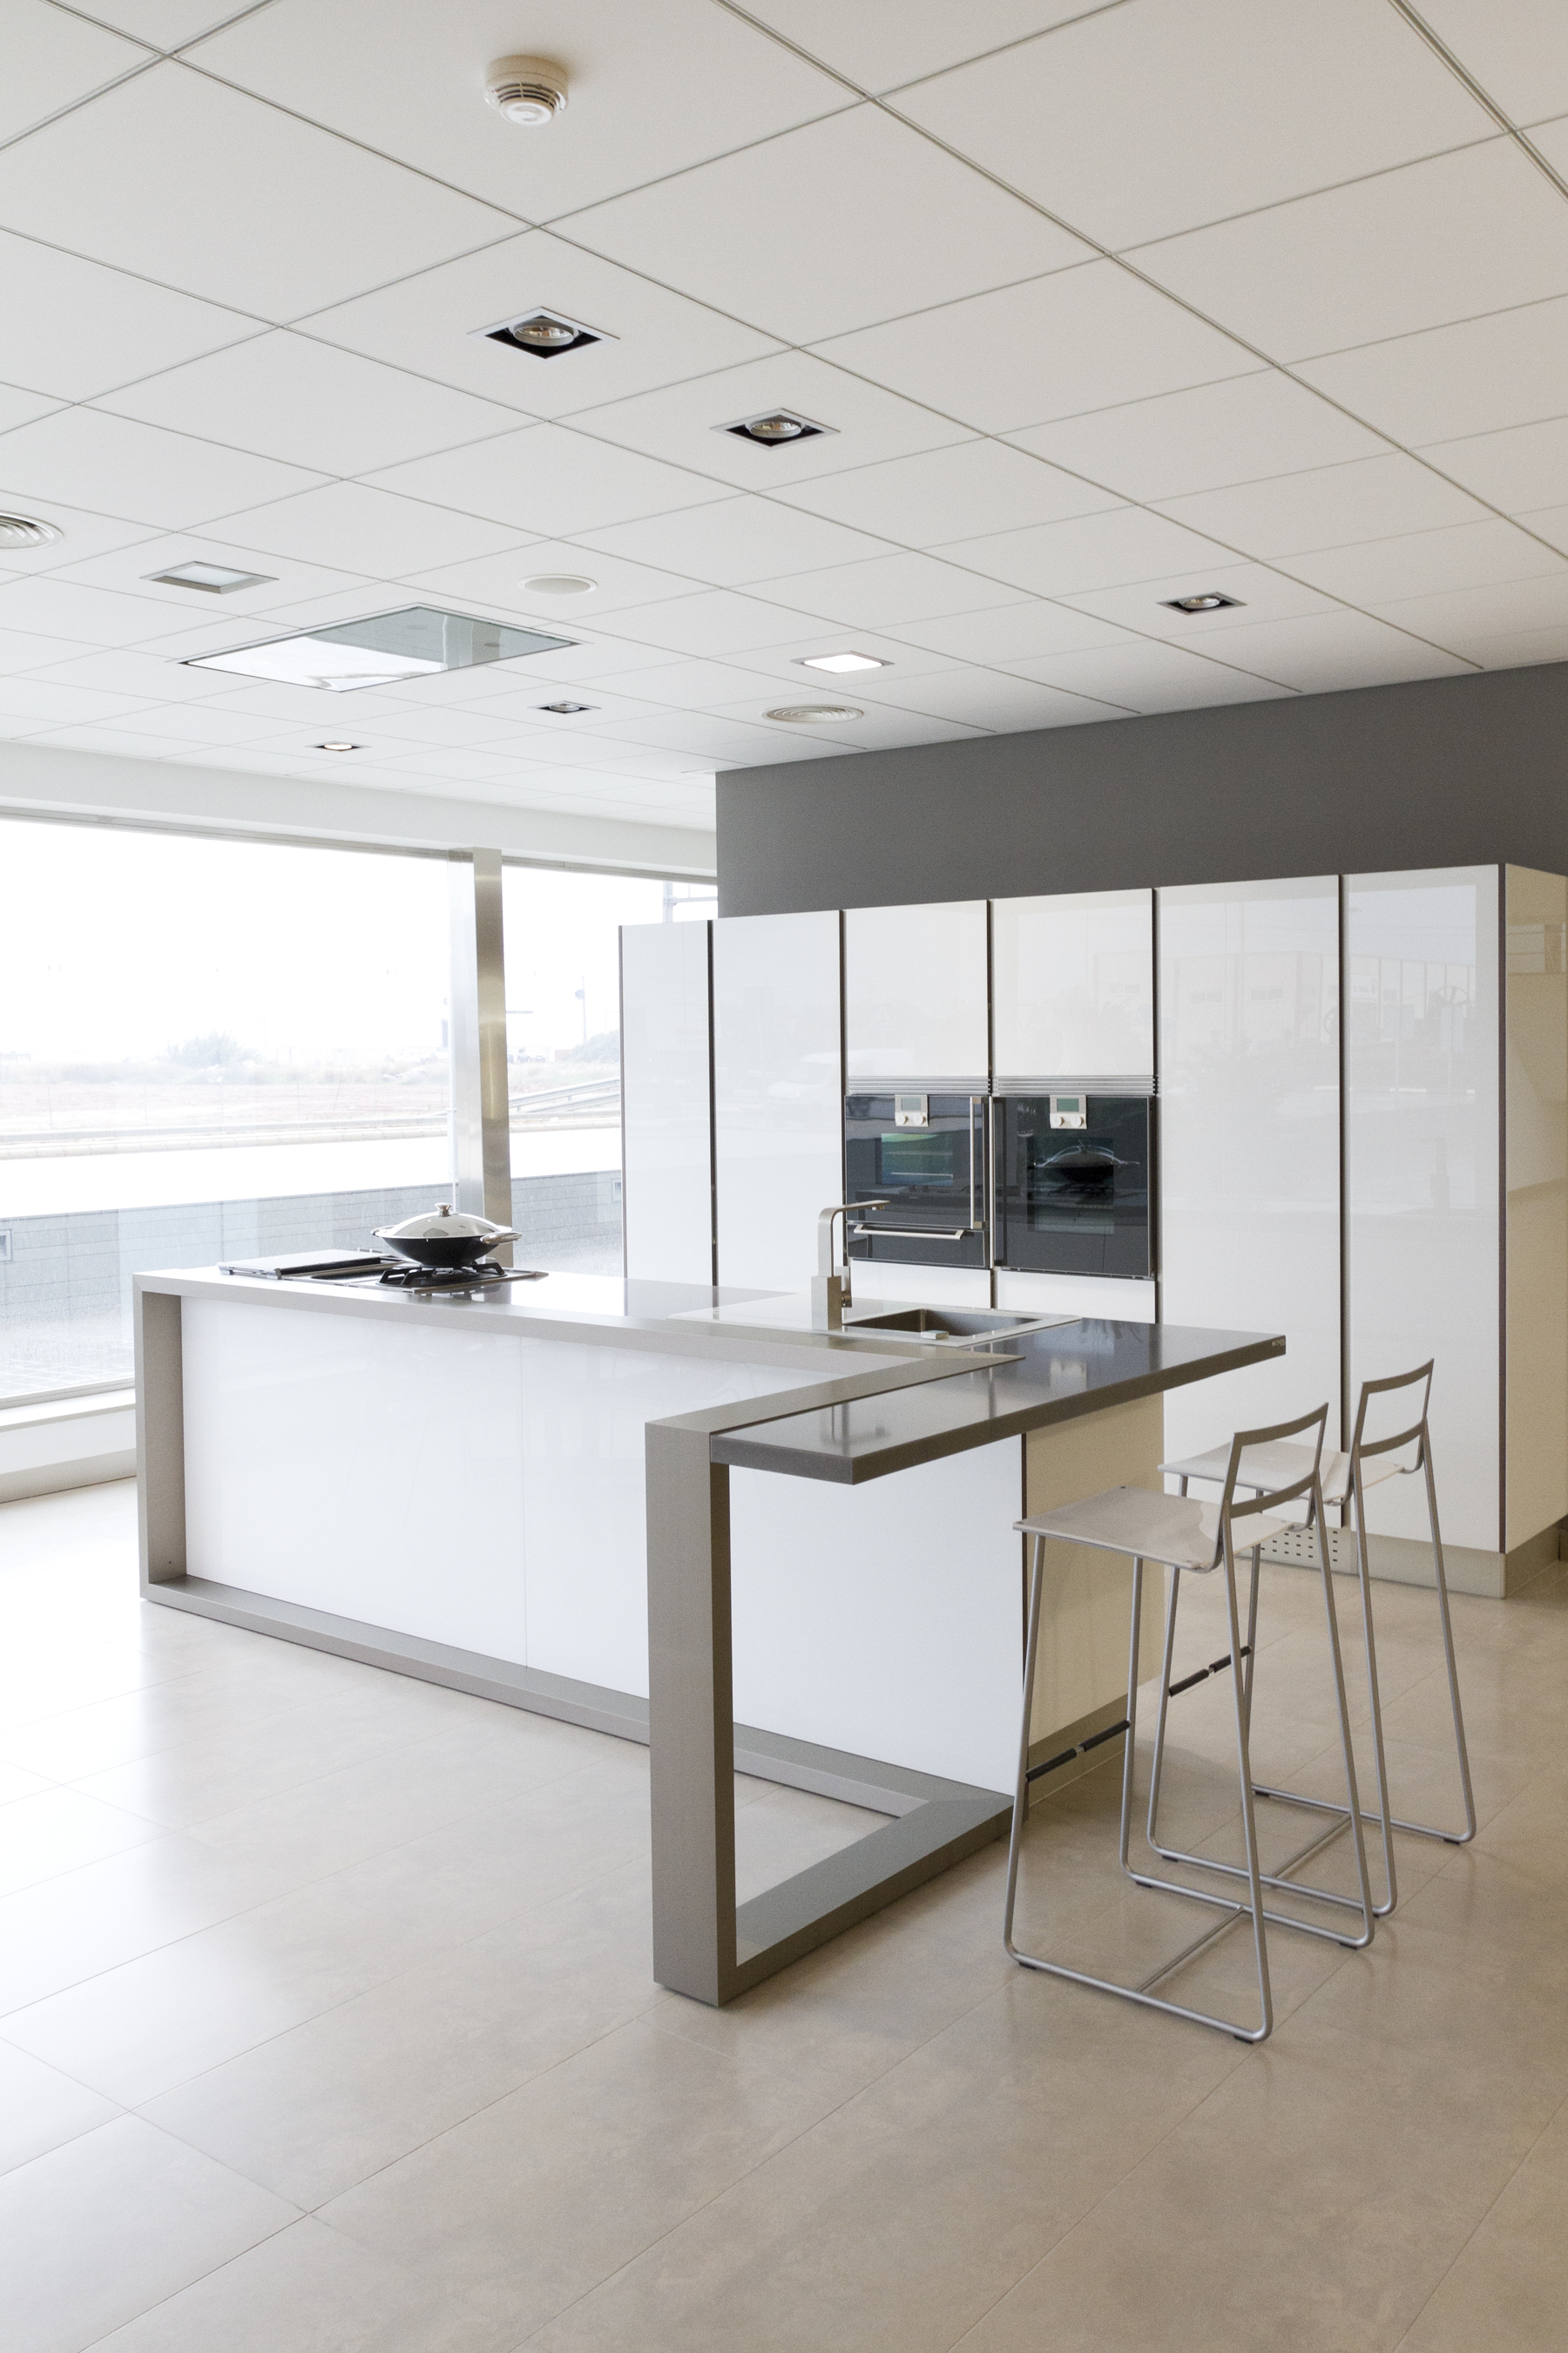 This kitchen features a similar contrast with light tile flooring and